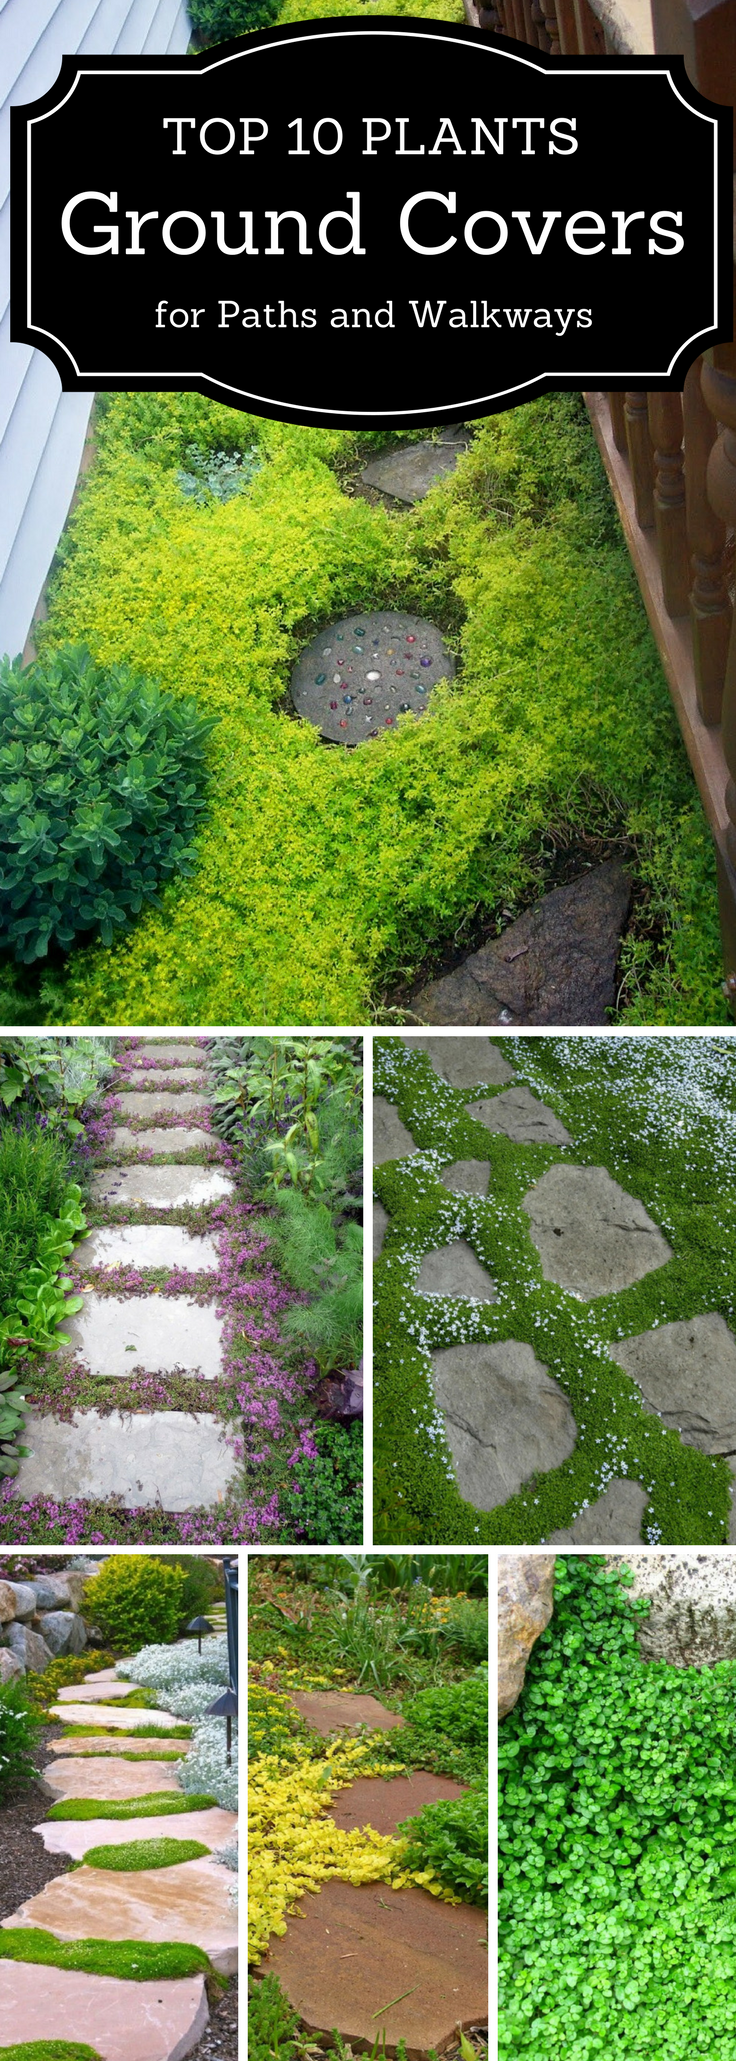 Top 10 Plants And Ground Cover For Your Paths Walkways Topinspired